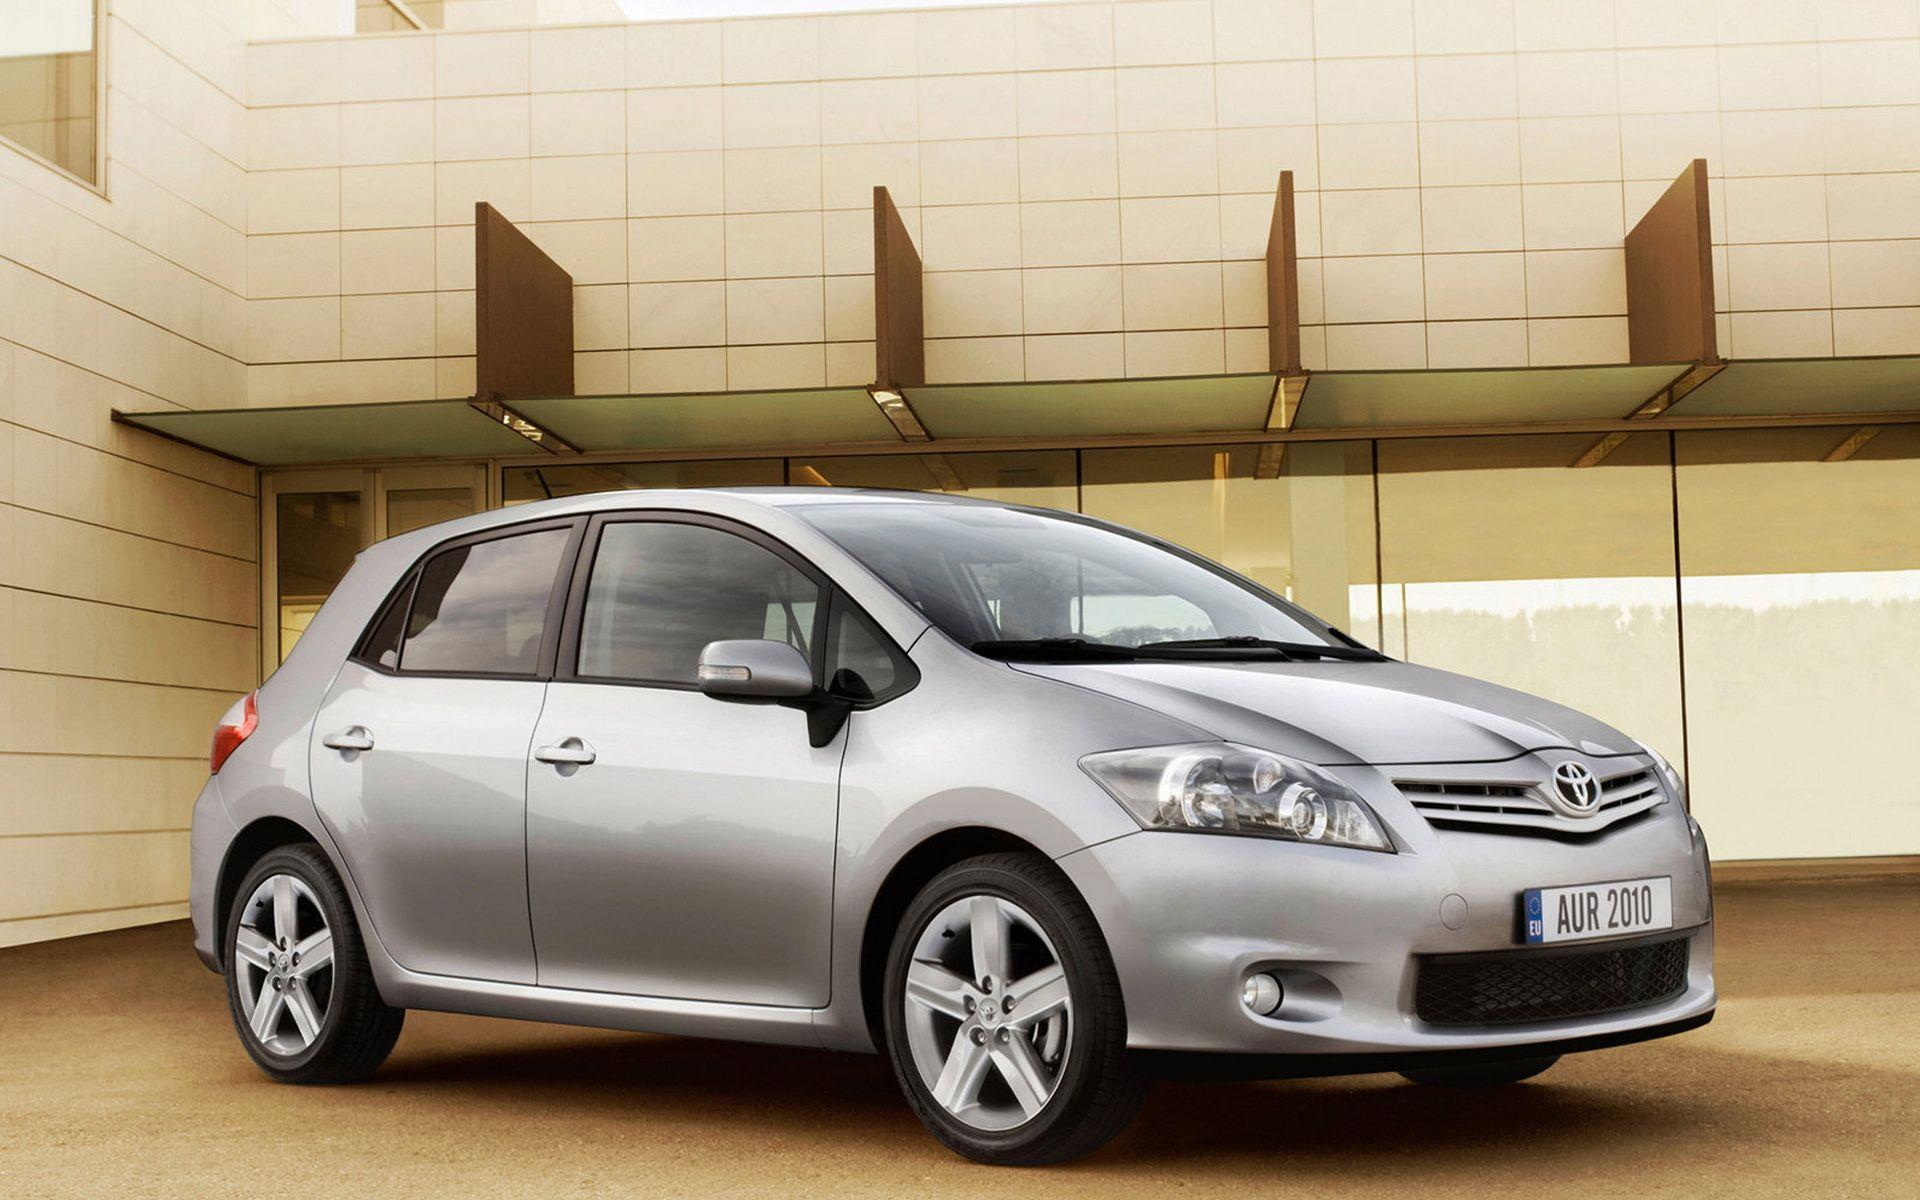 Toyota-Auris 2010 wallpapers and images - wallpapers, pictures, photos